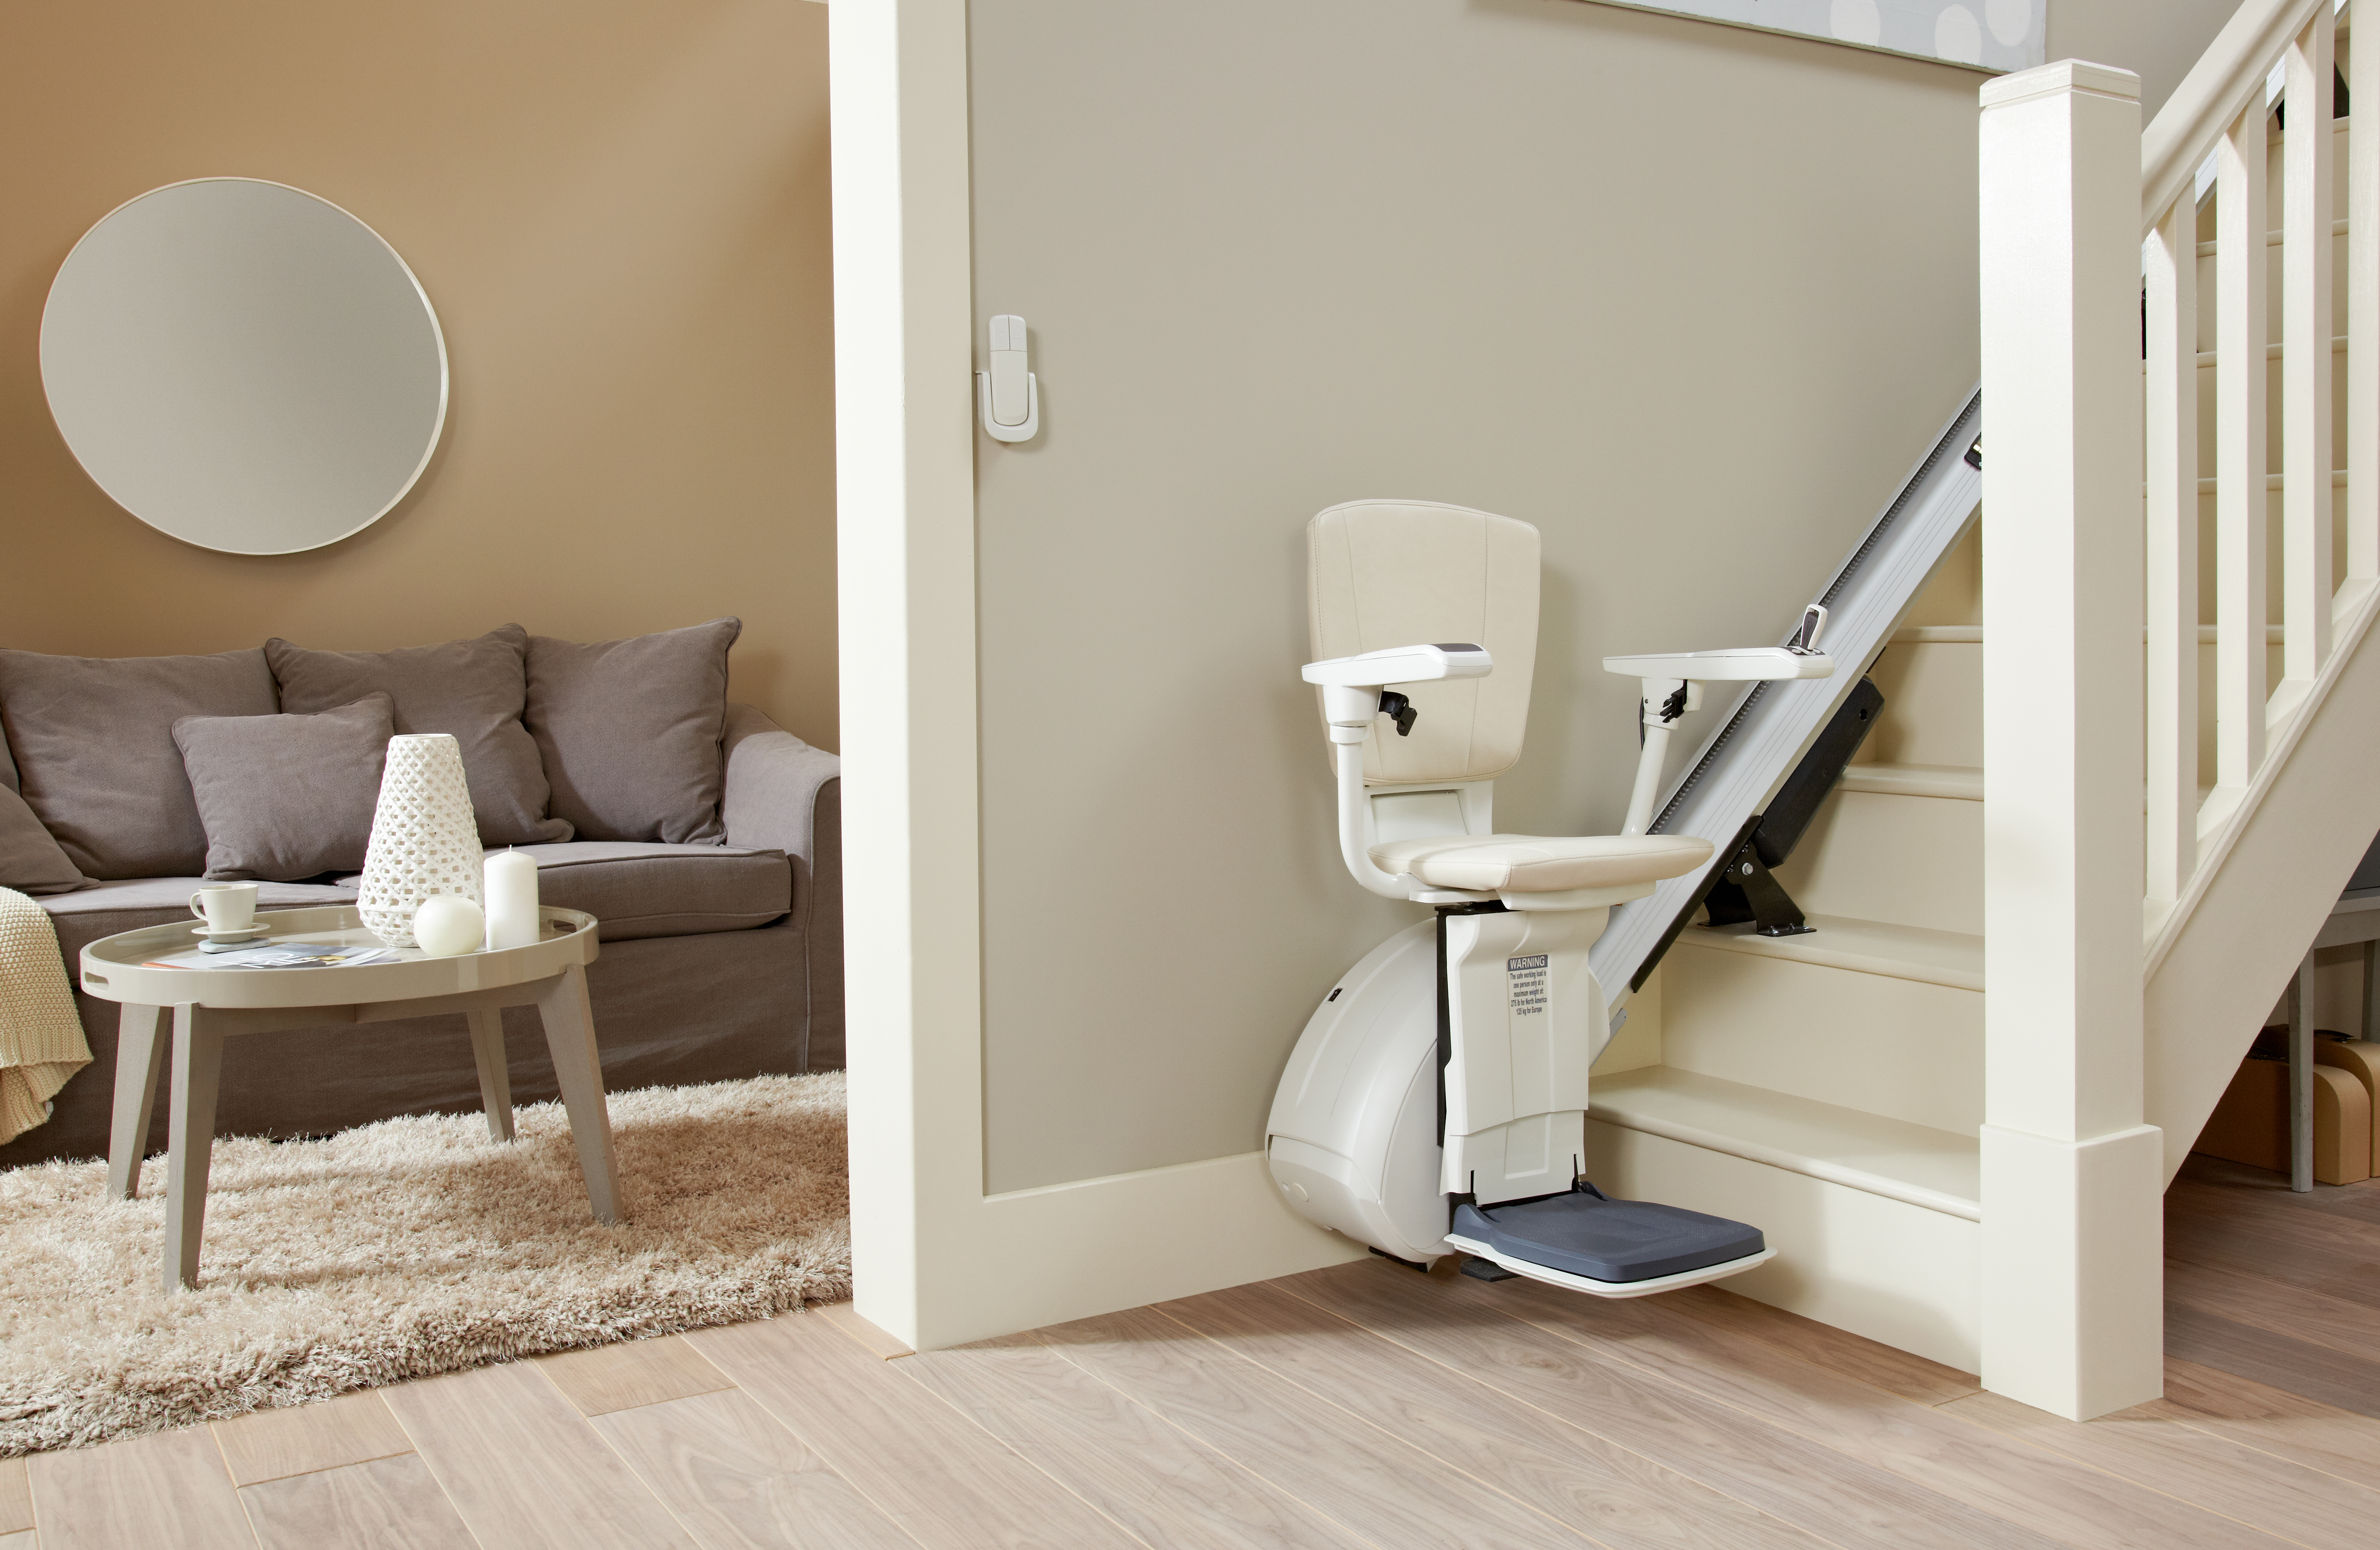 We'll find you the perfect Stairlift